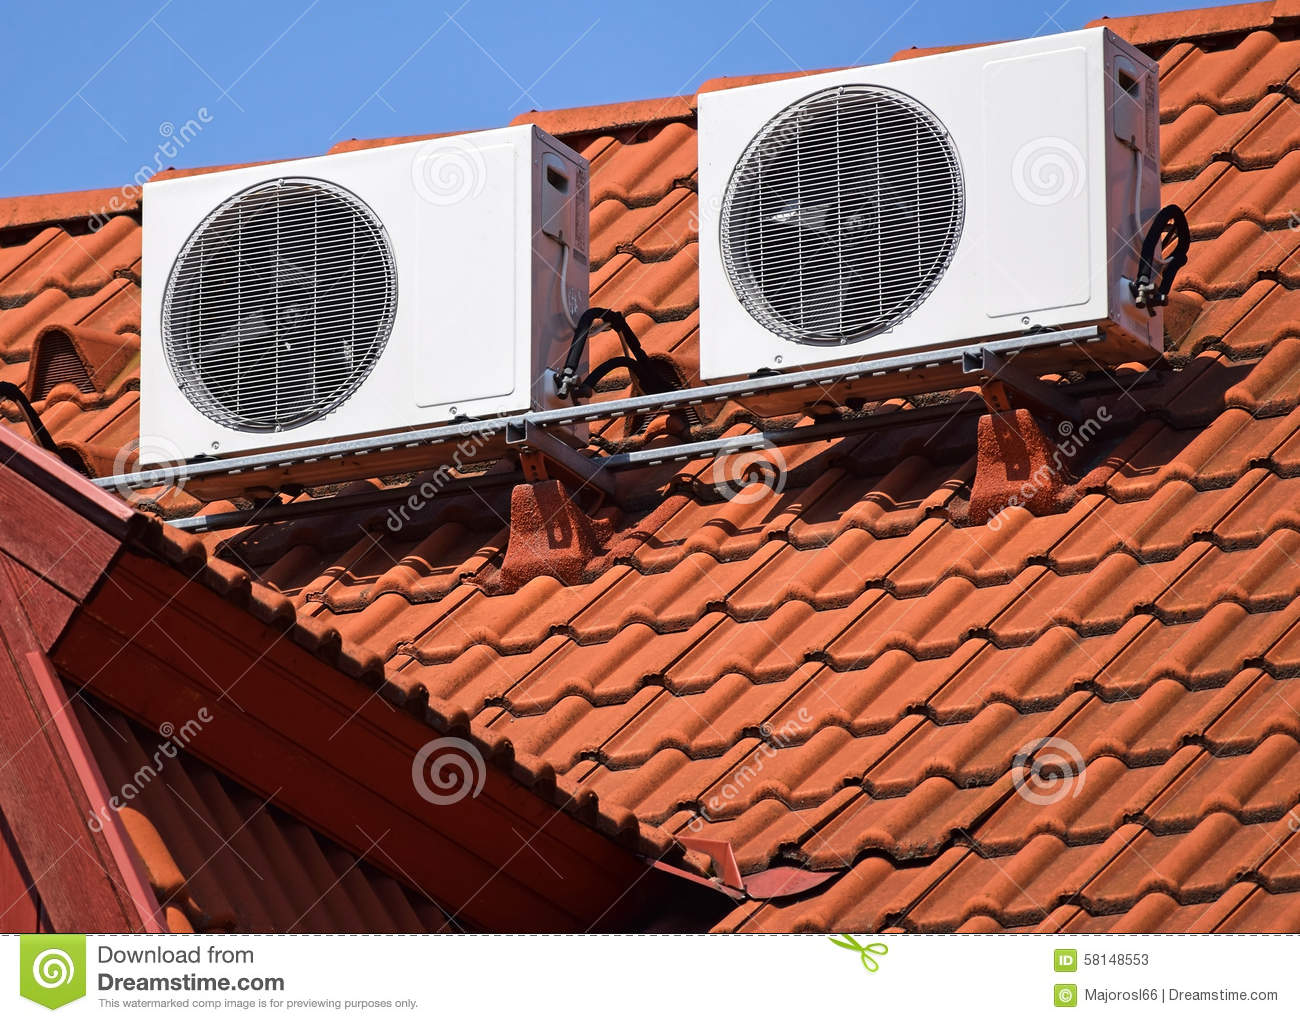 Air Conditioners On The Roof Stock Photo Cartoondealer